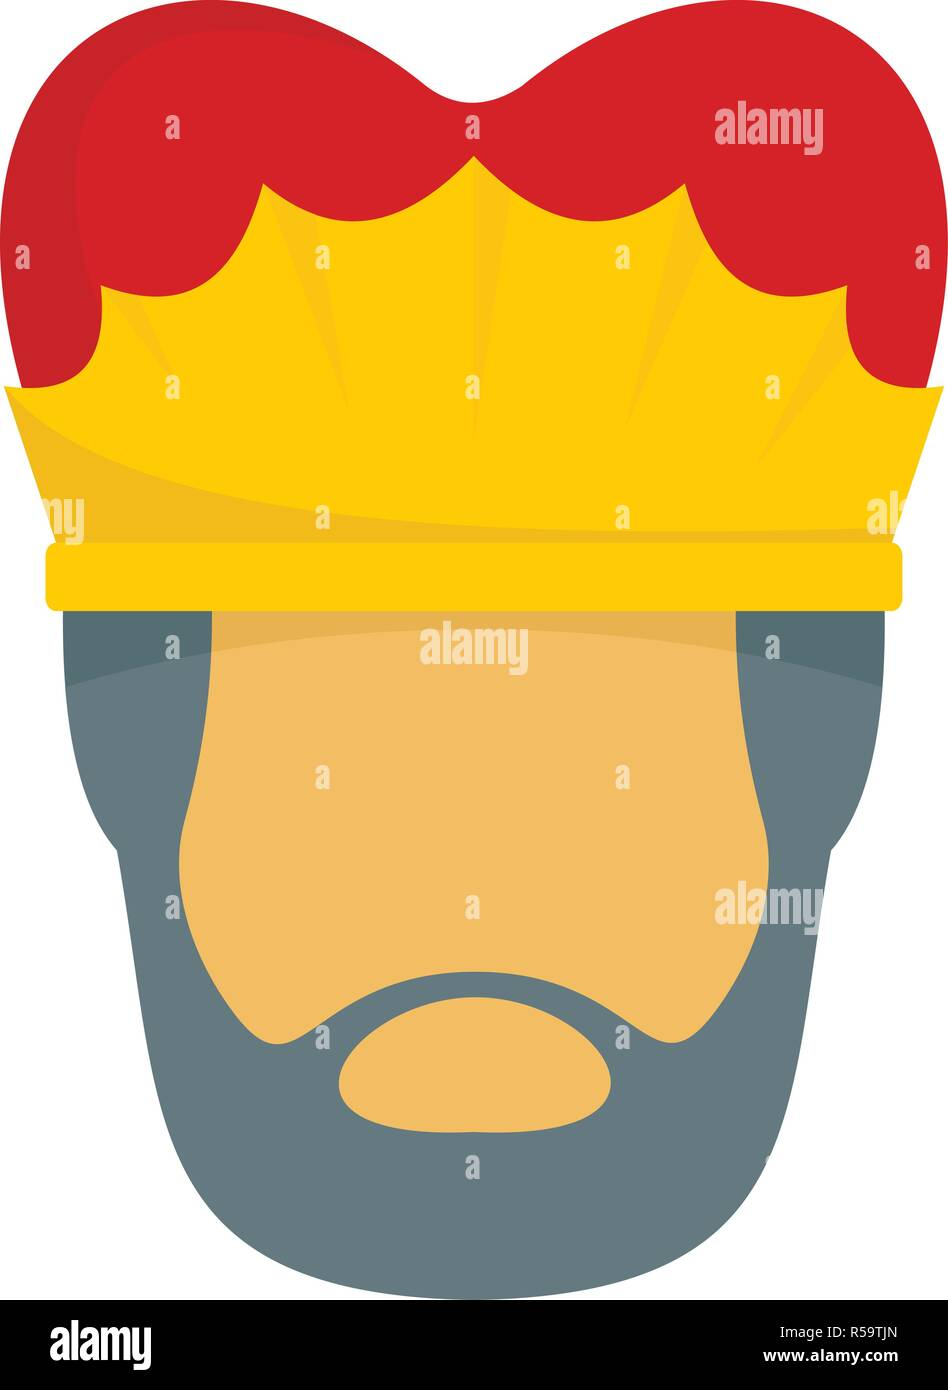 Royal king face icon. Flat illustration of royal king face vector icon for web design - Stock Image